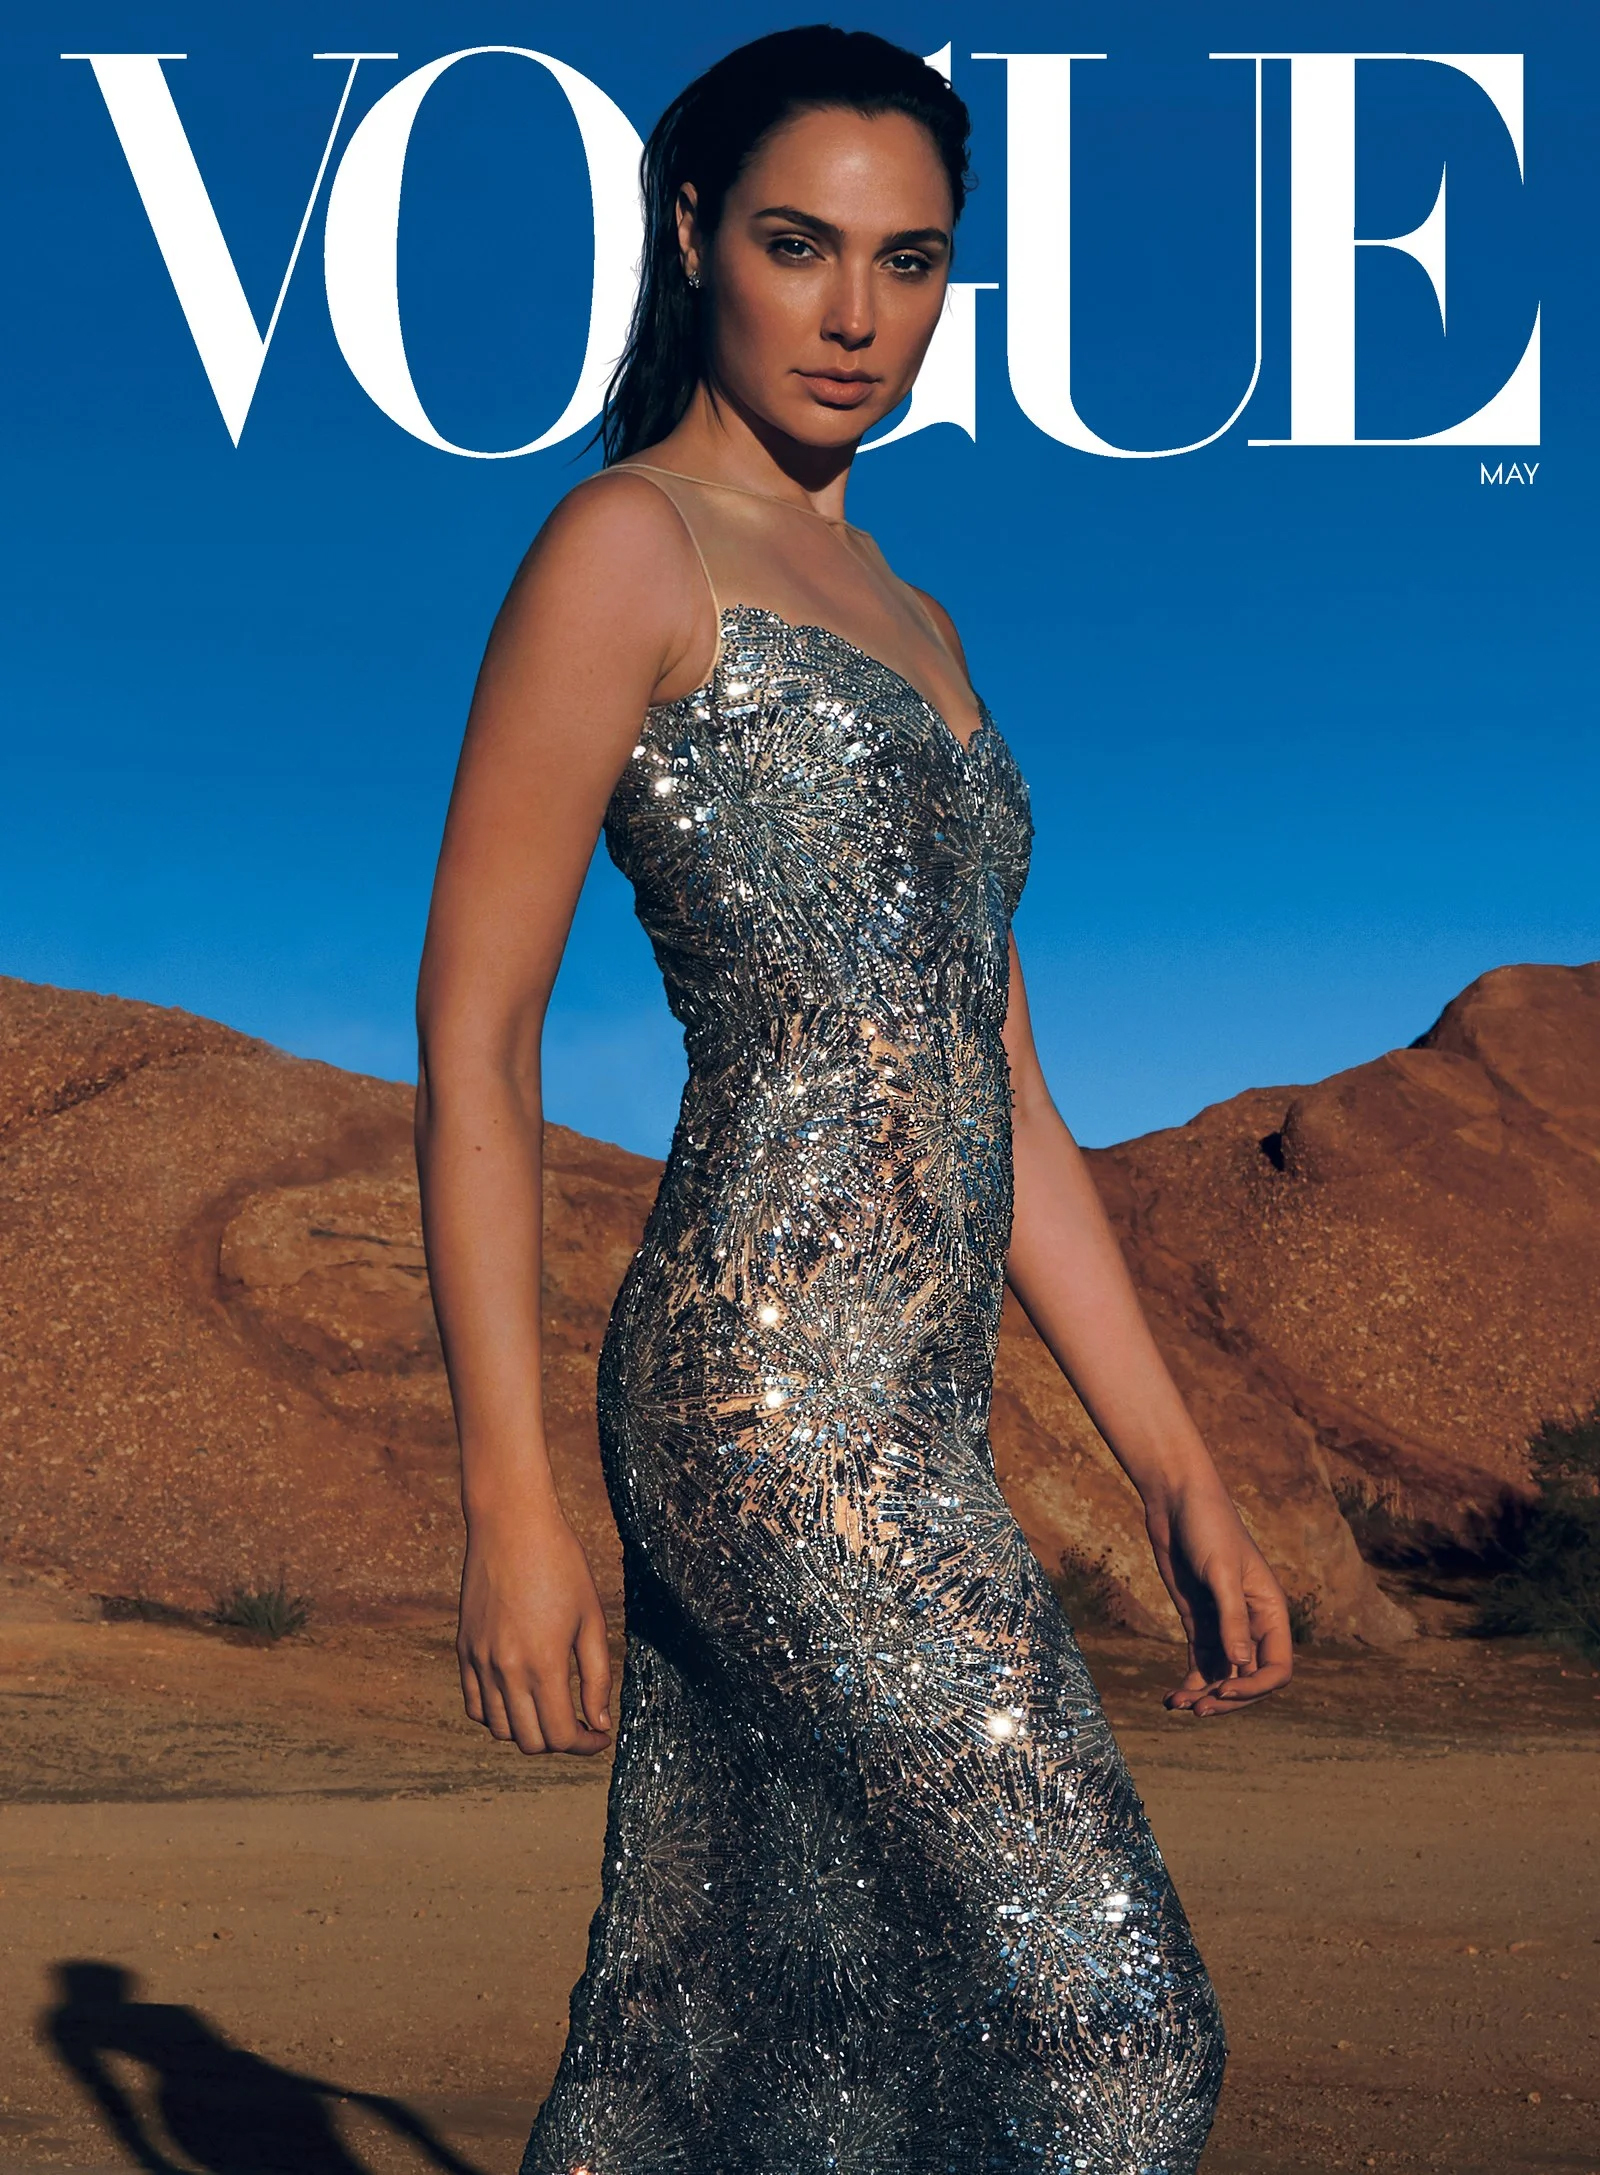 Gal Gadot - Vogue Cover - 2020